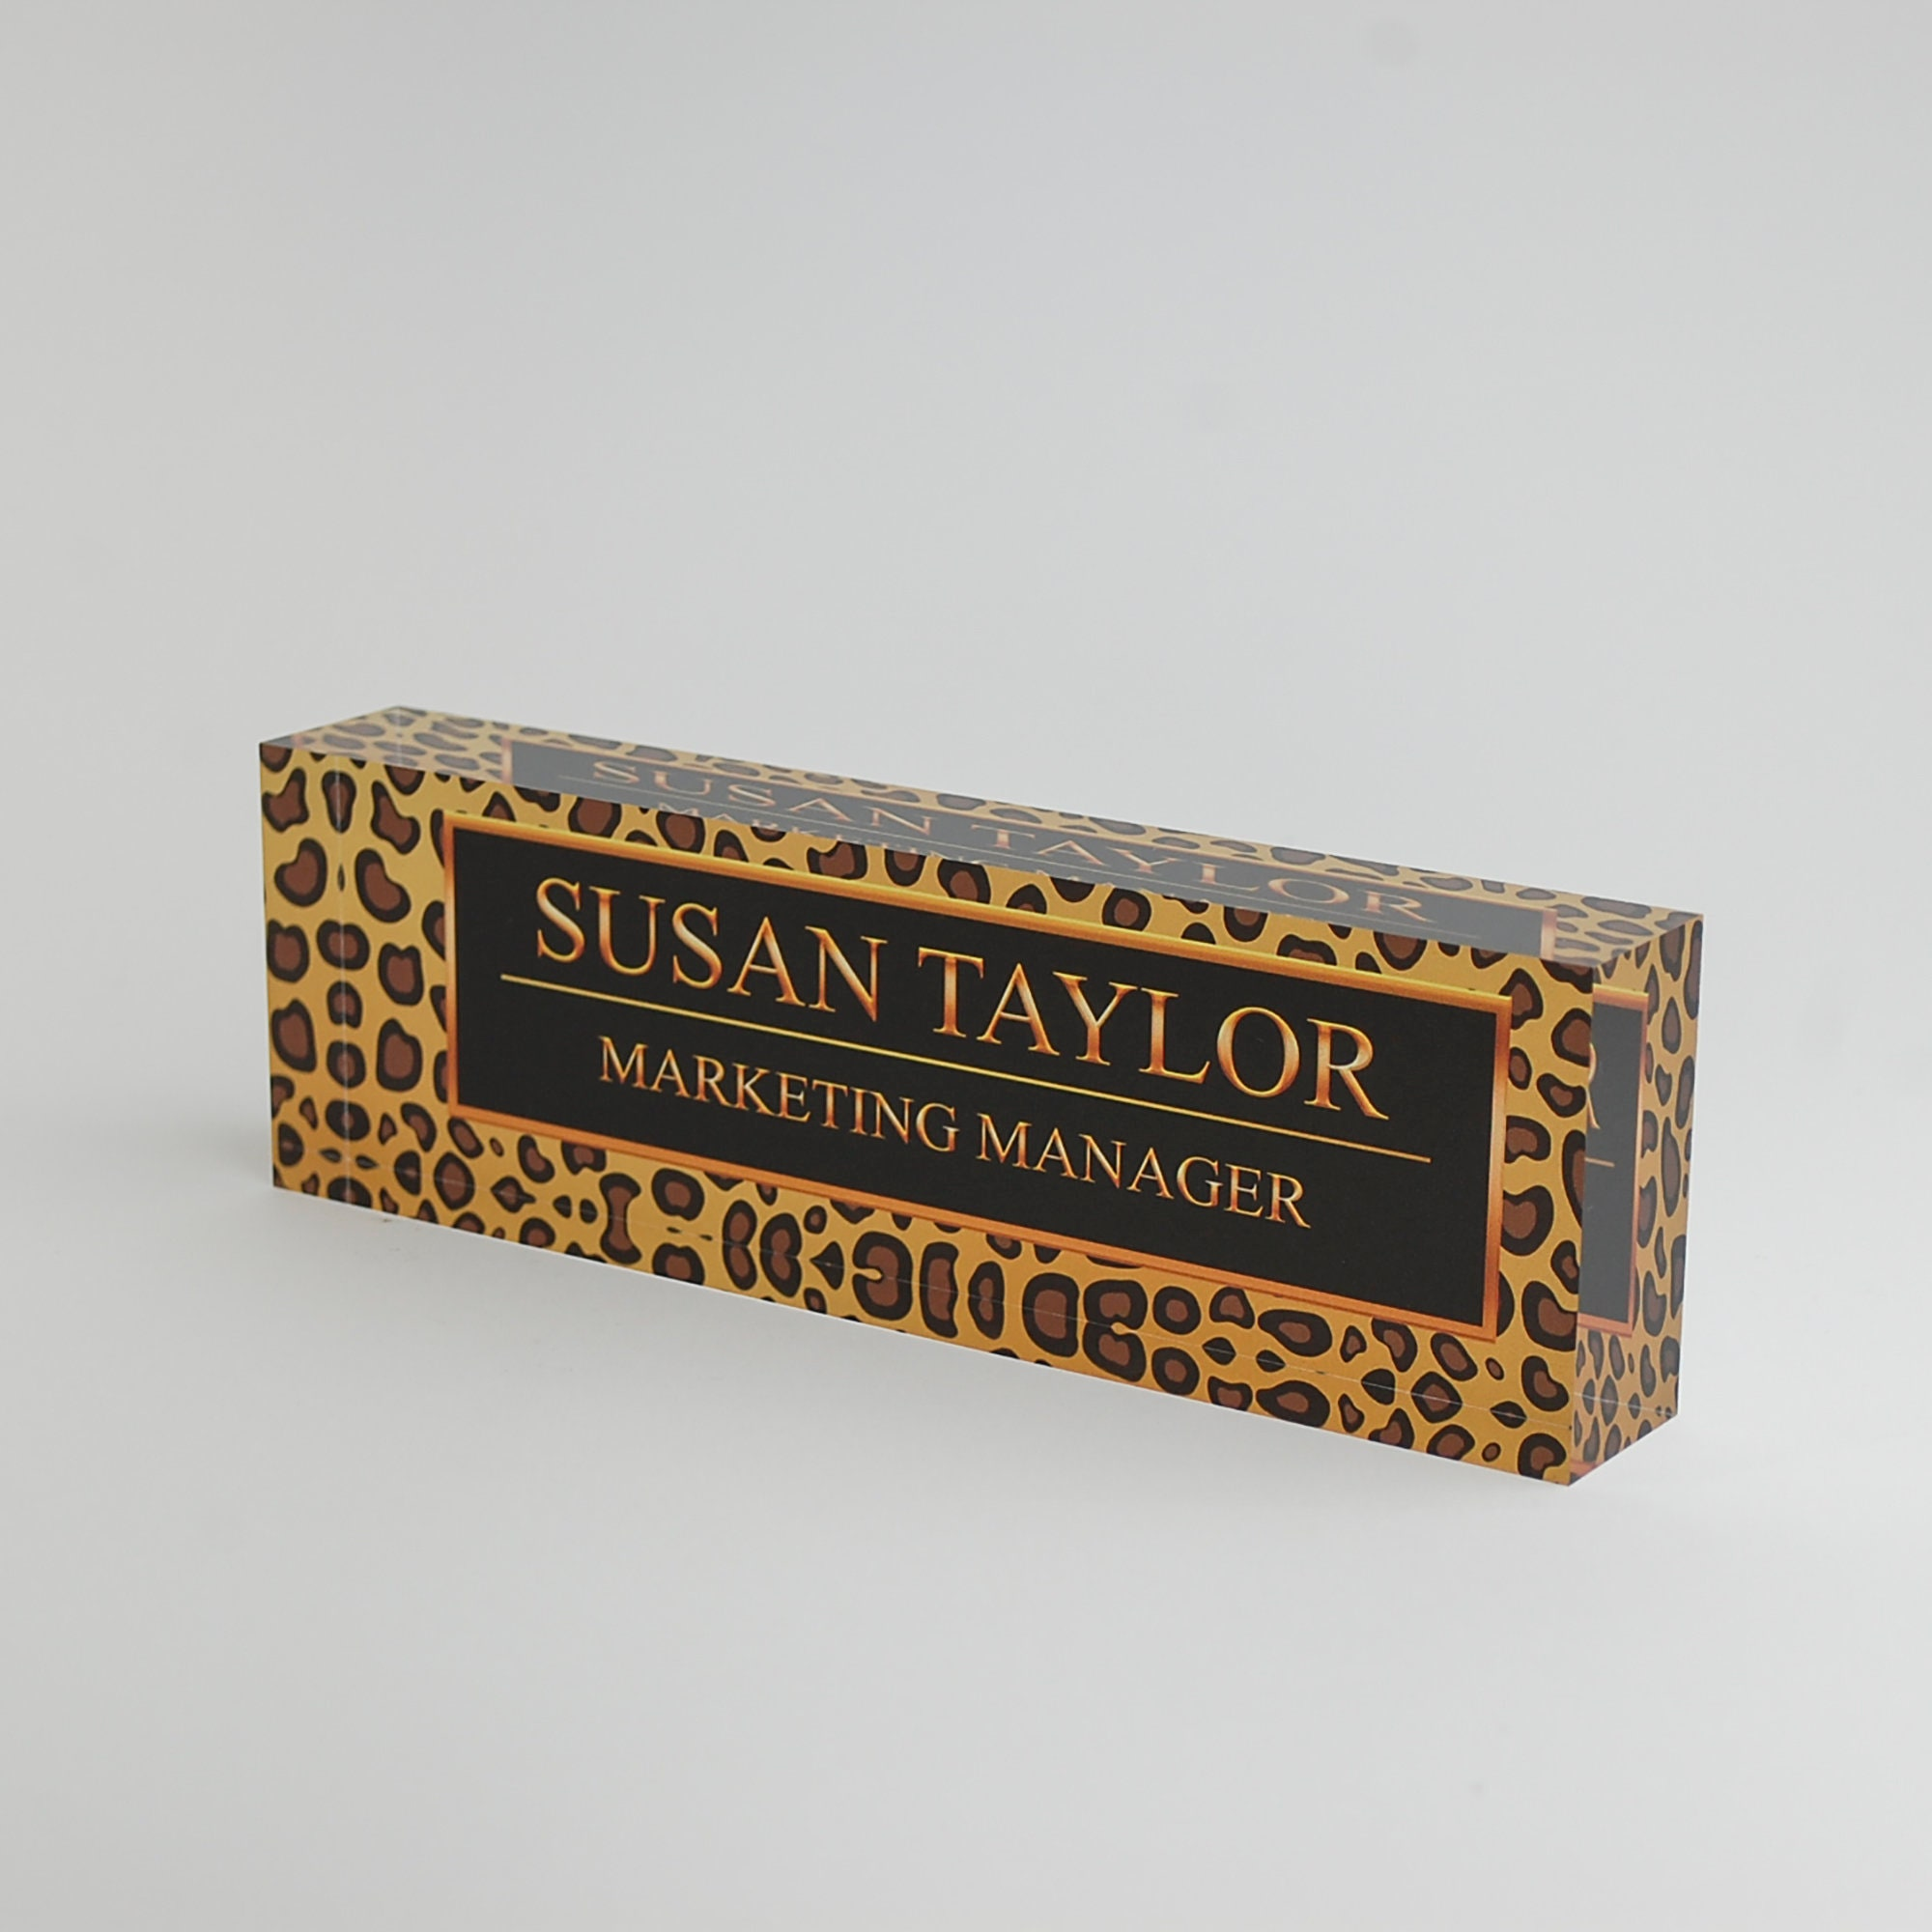 Personalized Desk Name Plate Name Title On Leopard Design